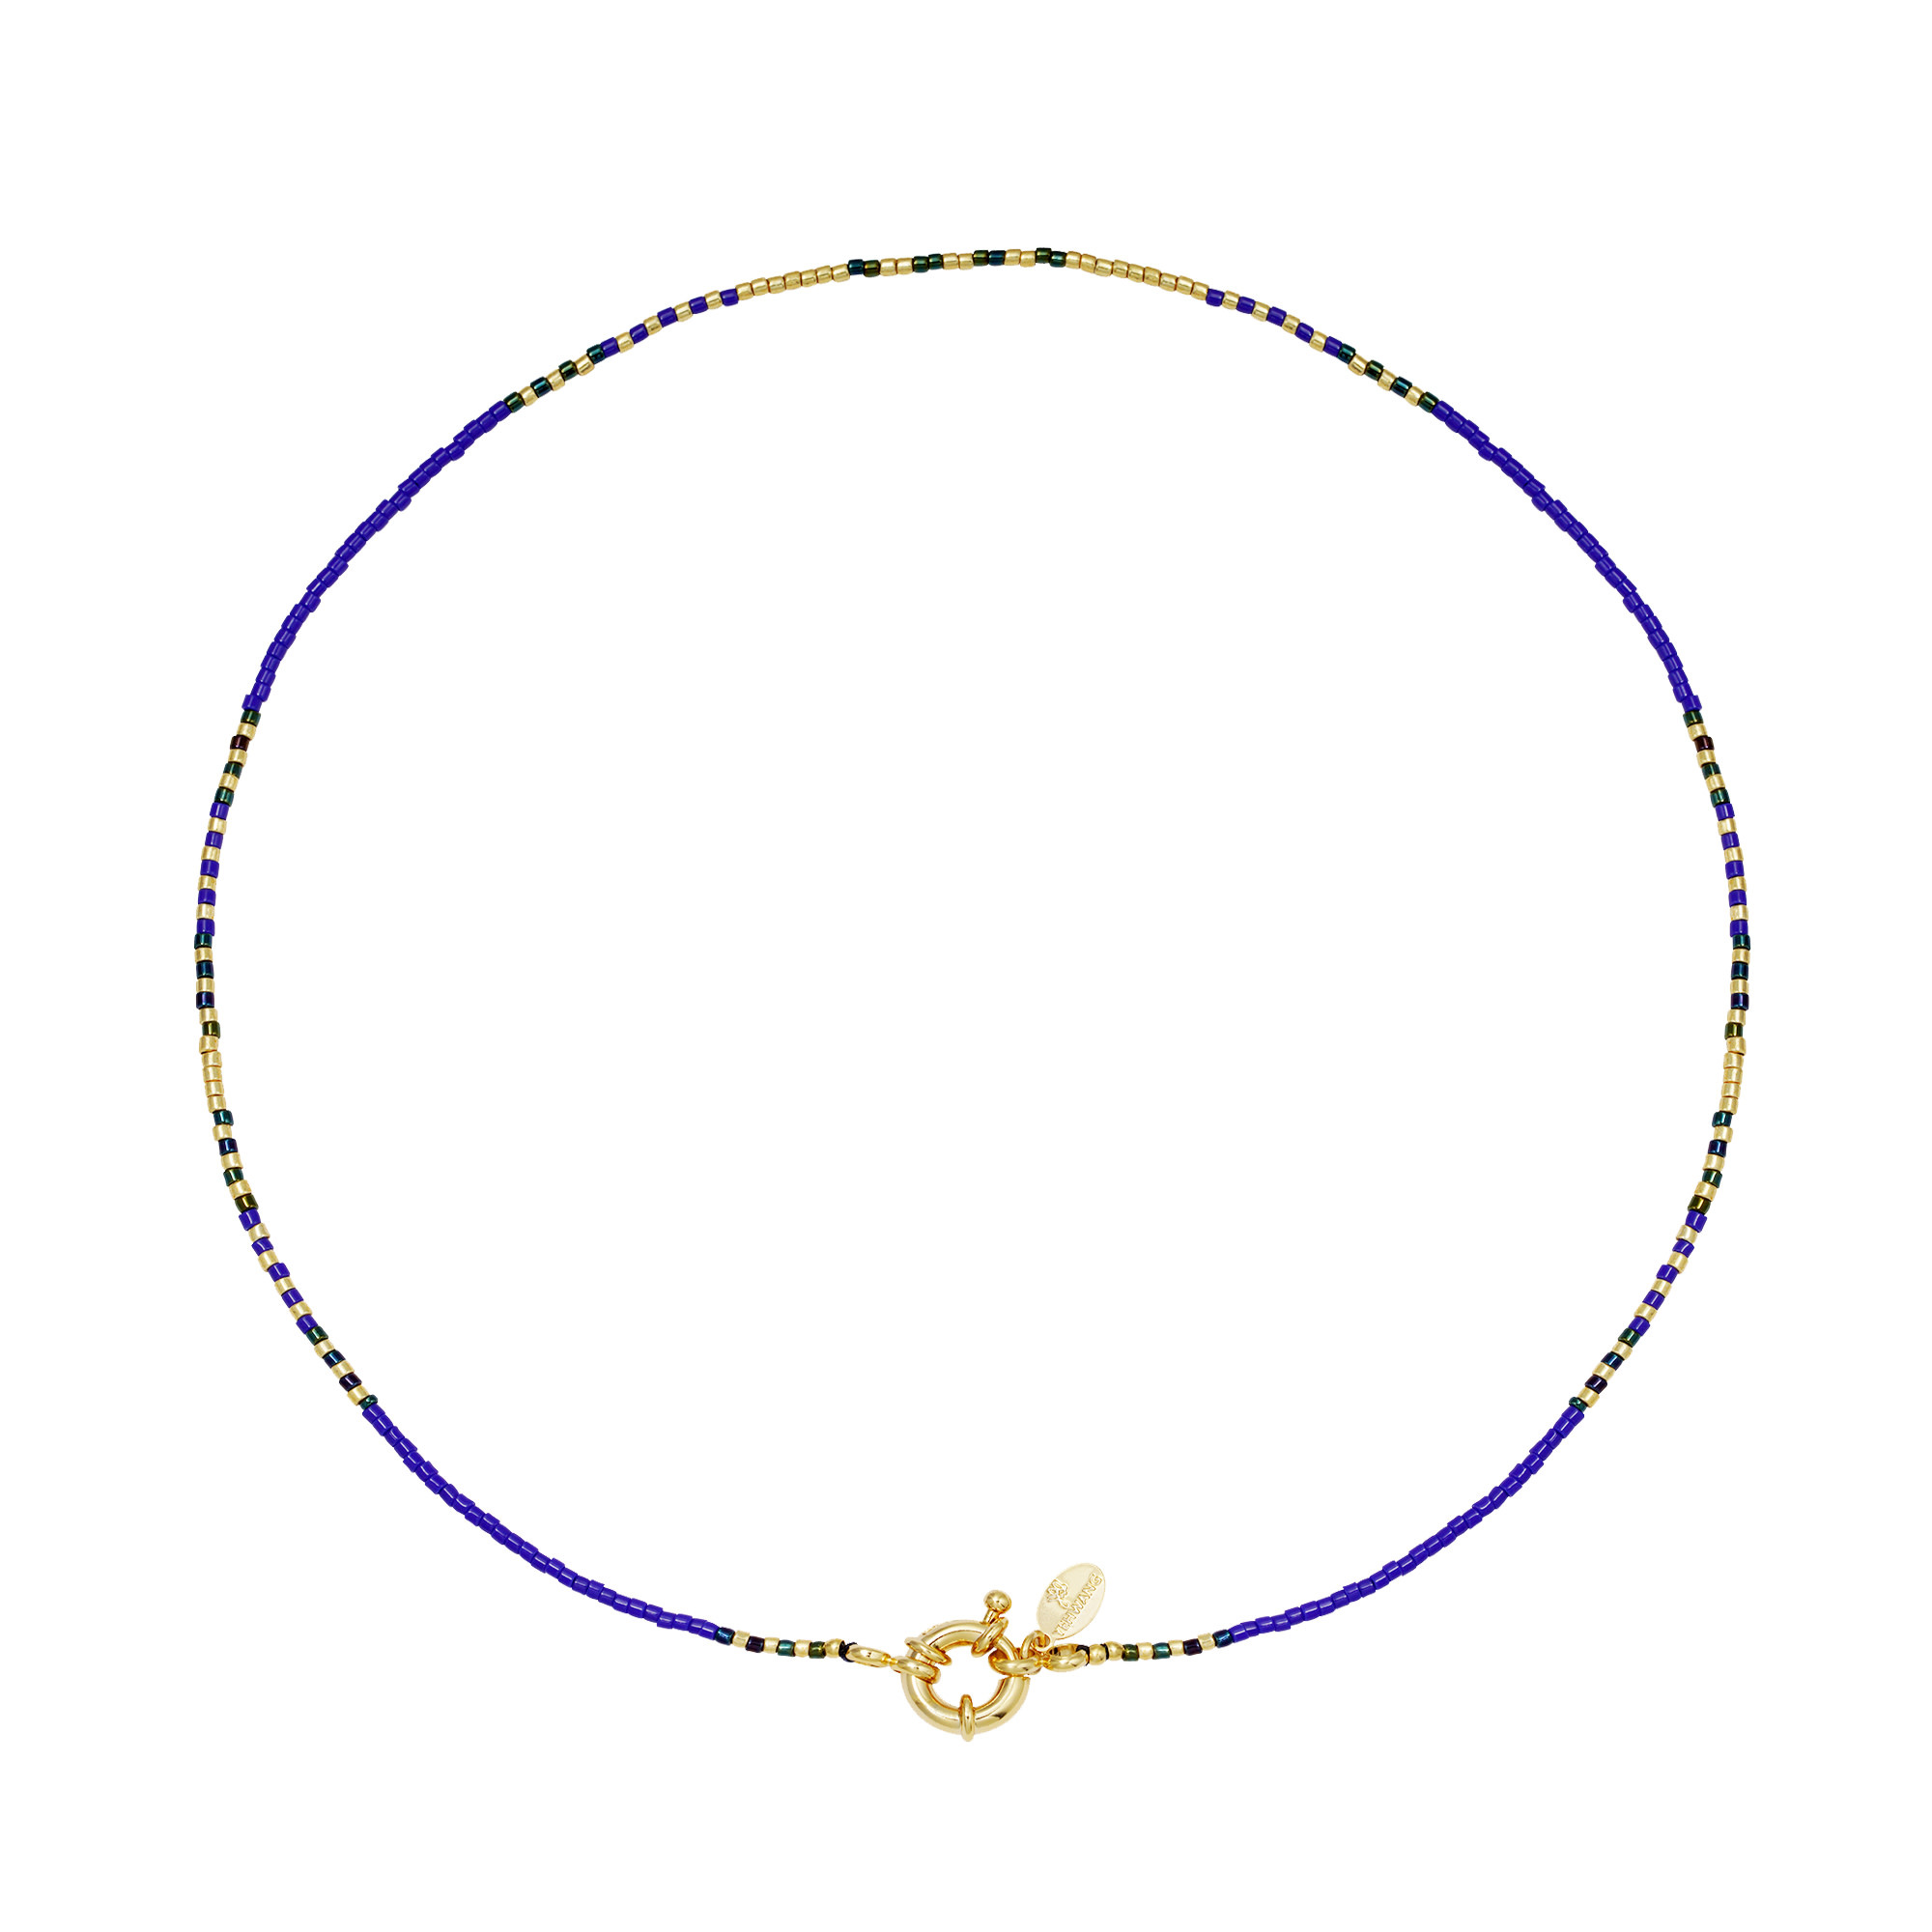 With love Necklace delicate - cobalt blue